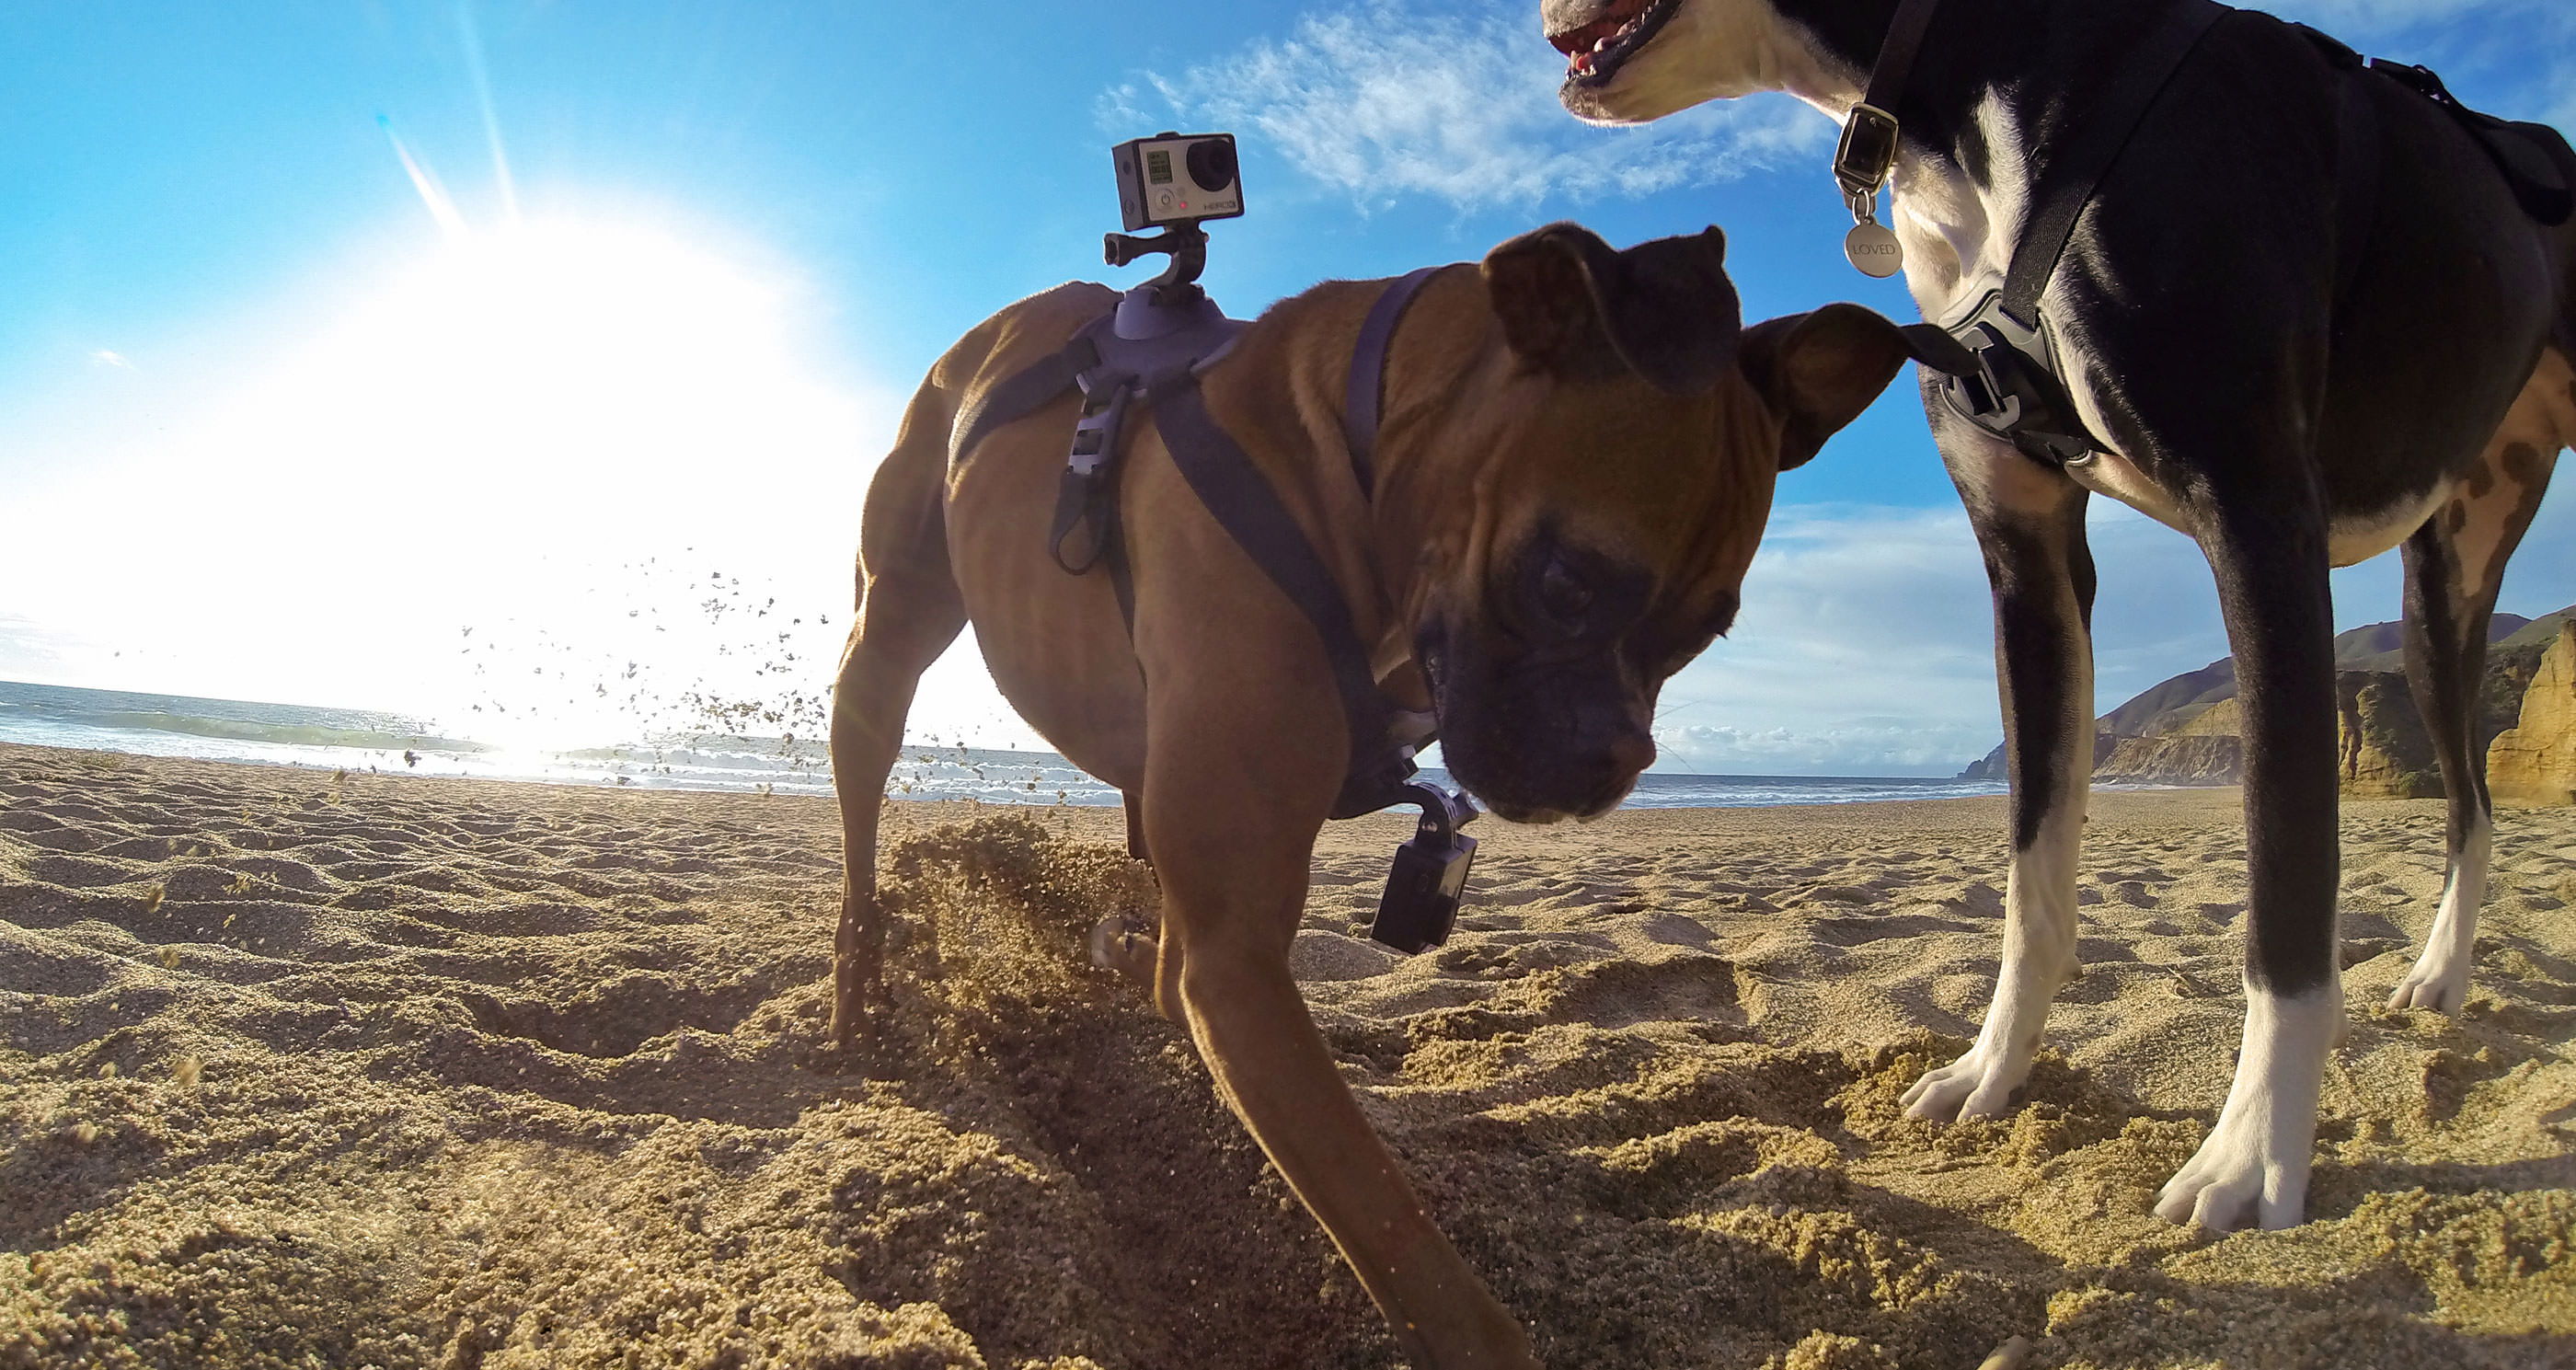 GoPro to lay off 270 people, expects full-year profitability in 2017